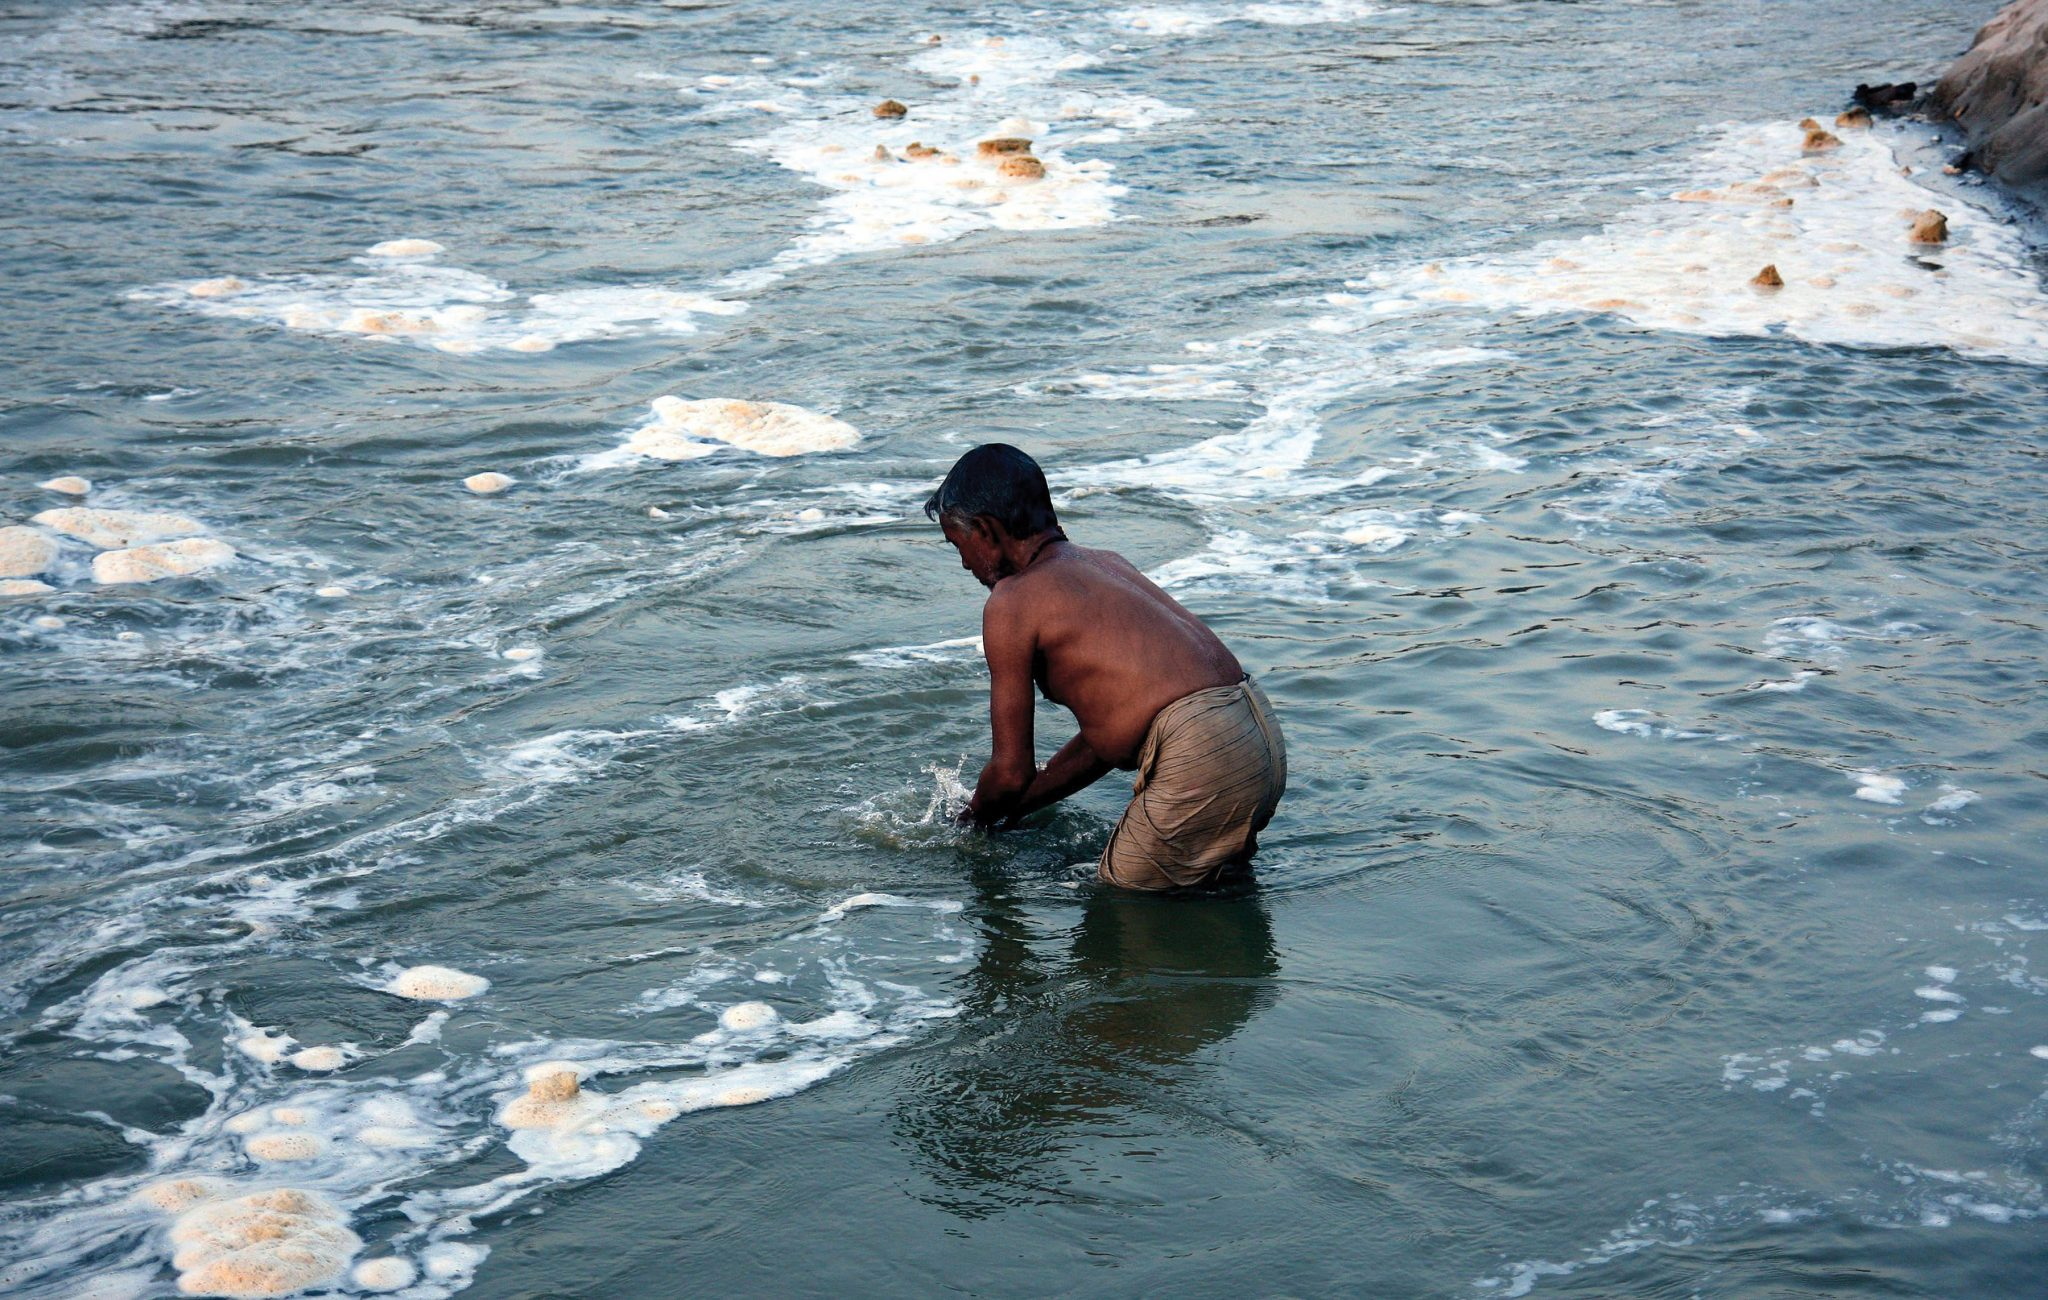 A Hindu devotee takes a holy dip in the polluted river Ganga (Ganges) in Allahabad.